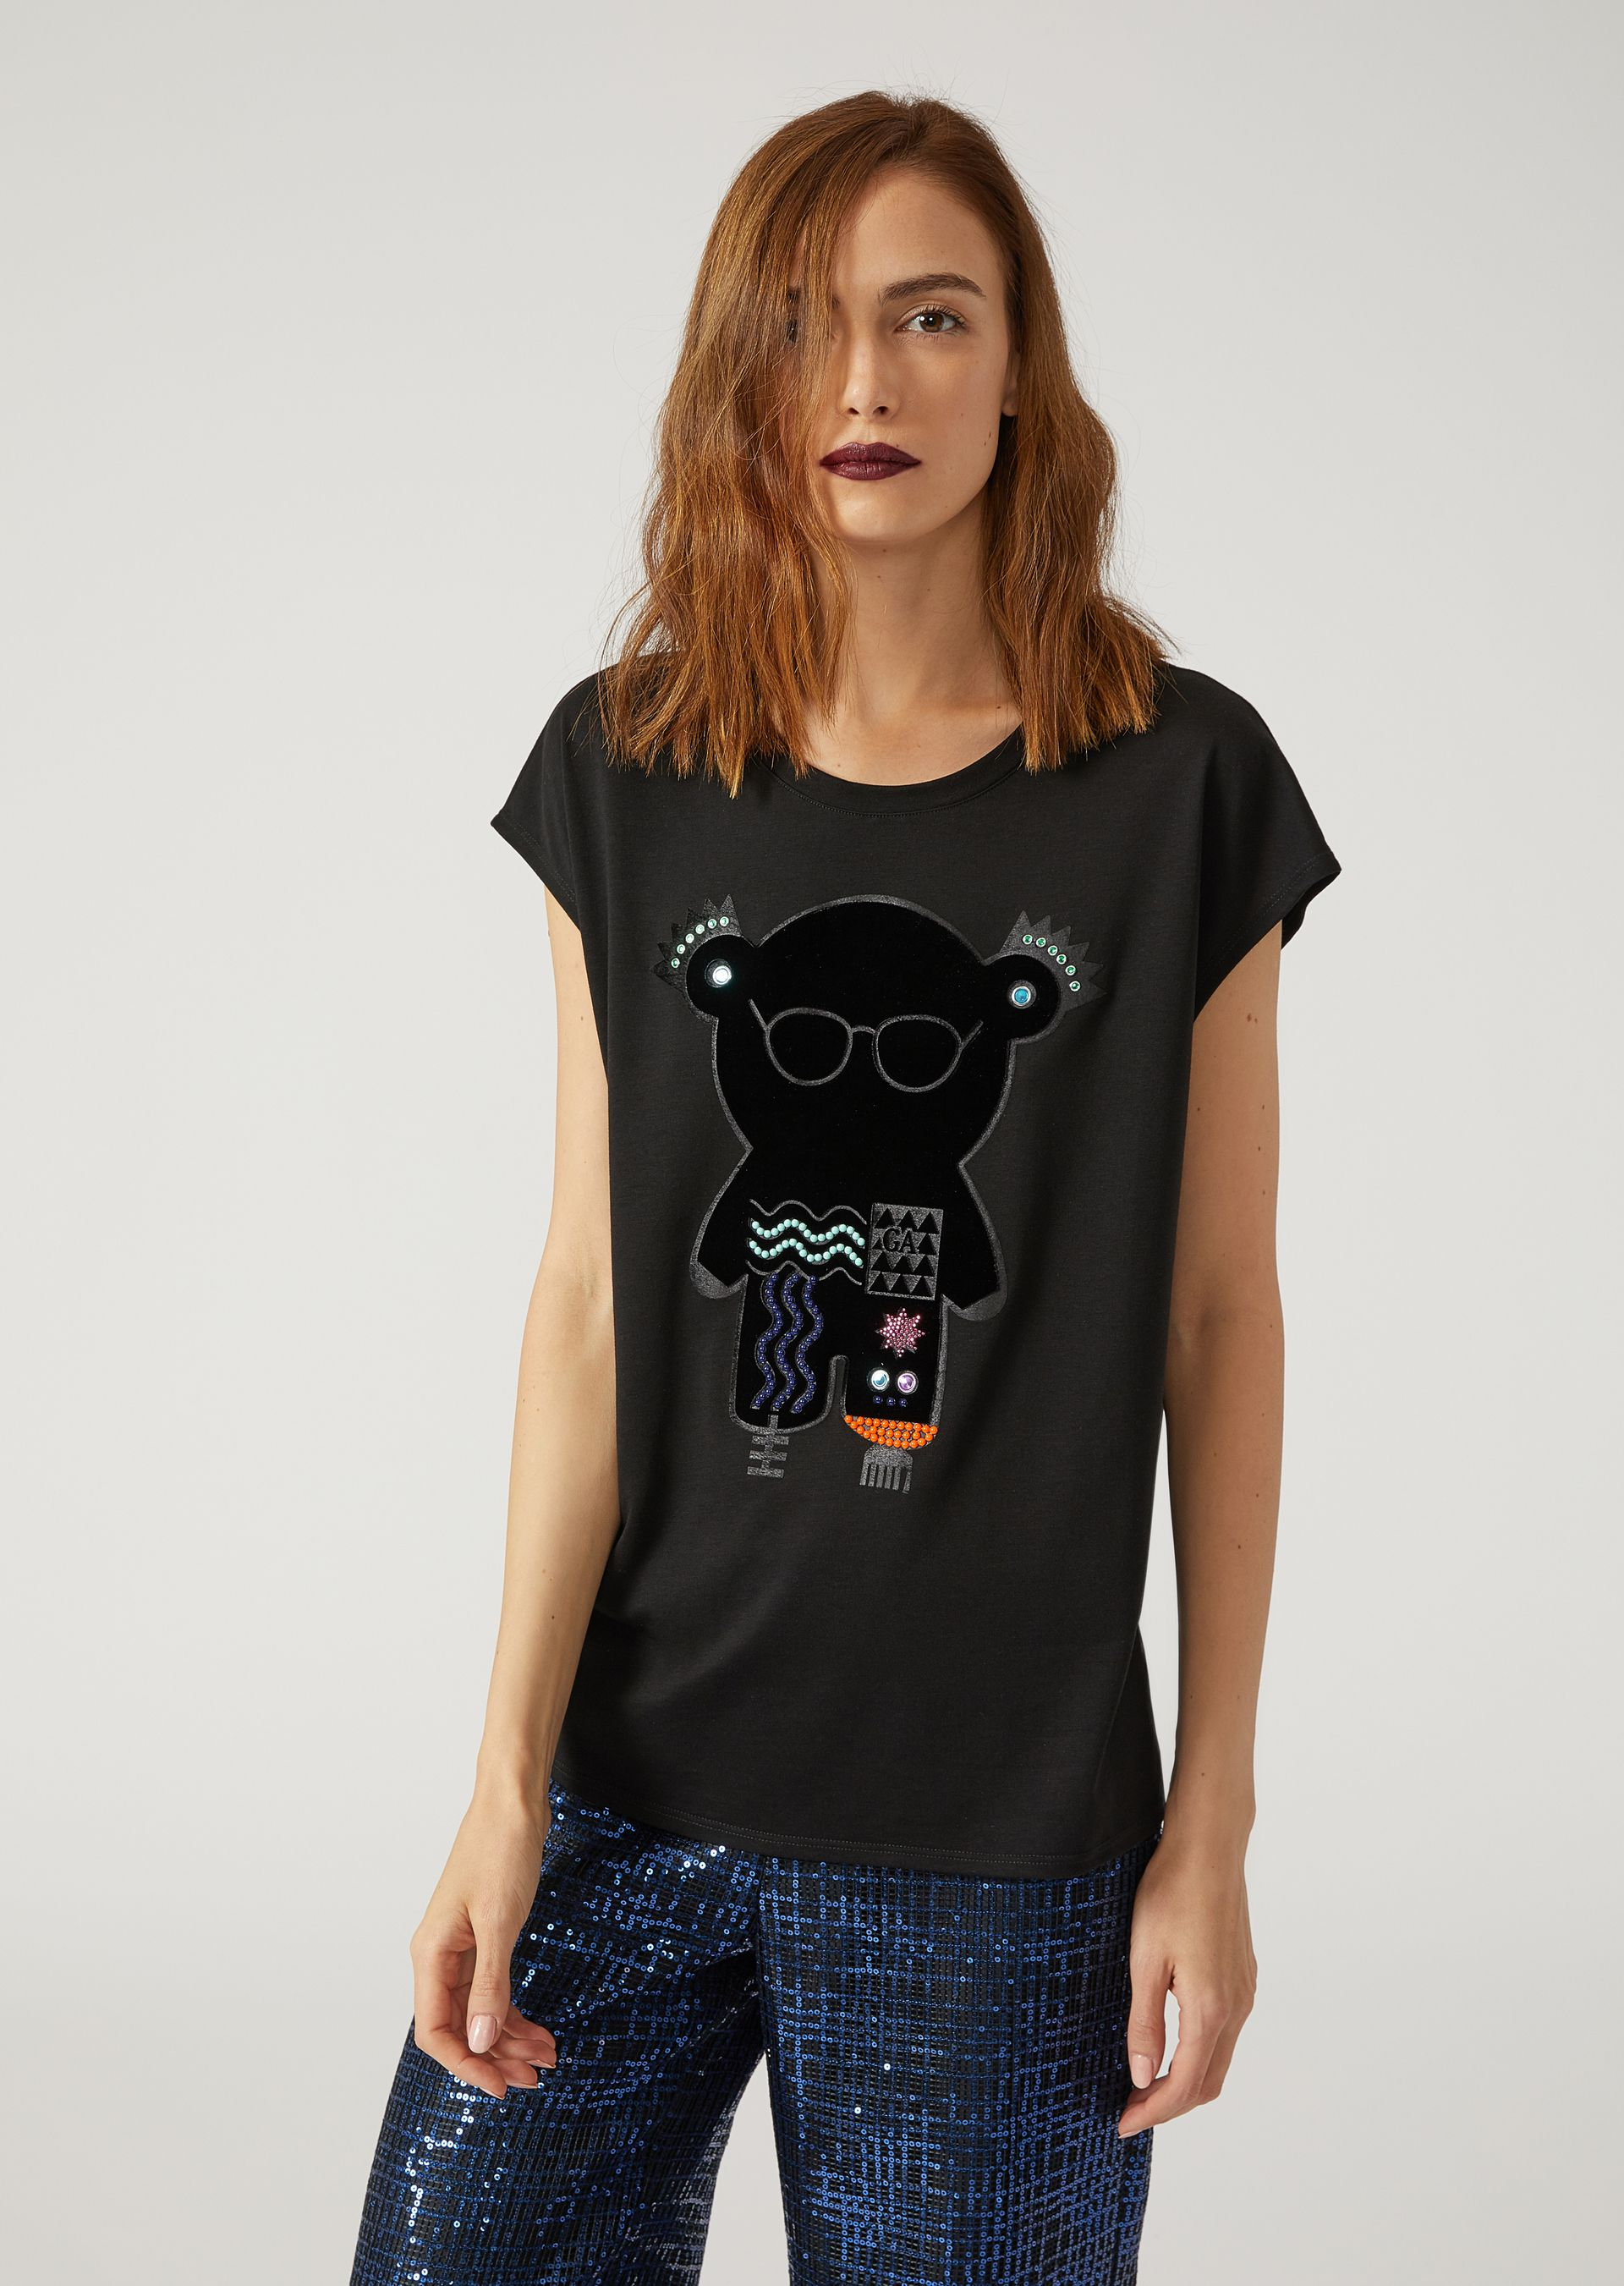 EMPORIO ARMANI T-SHIRT WITH MANGA BEAR PATCH T-Shirt D f ...